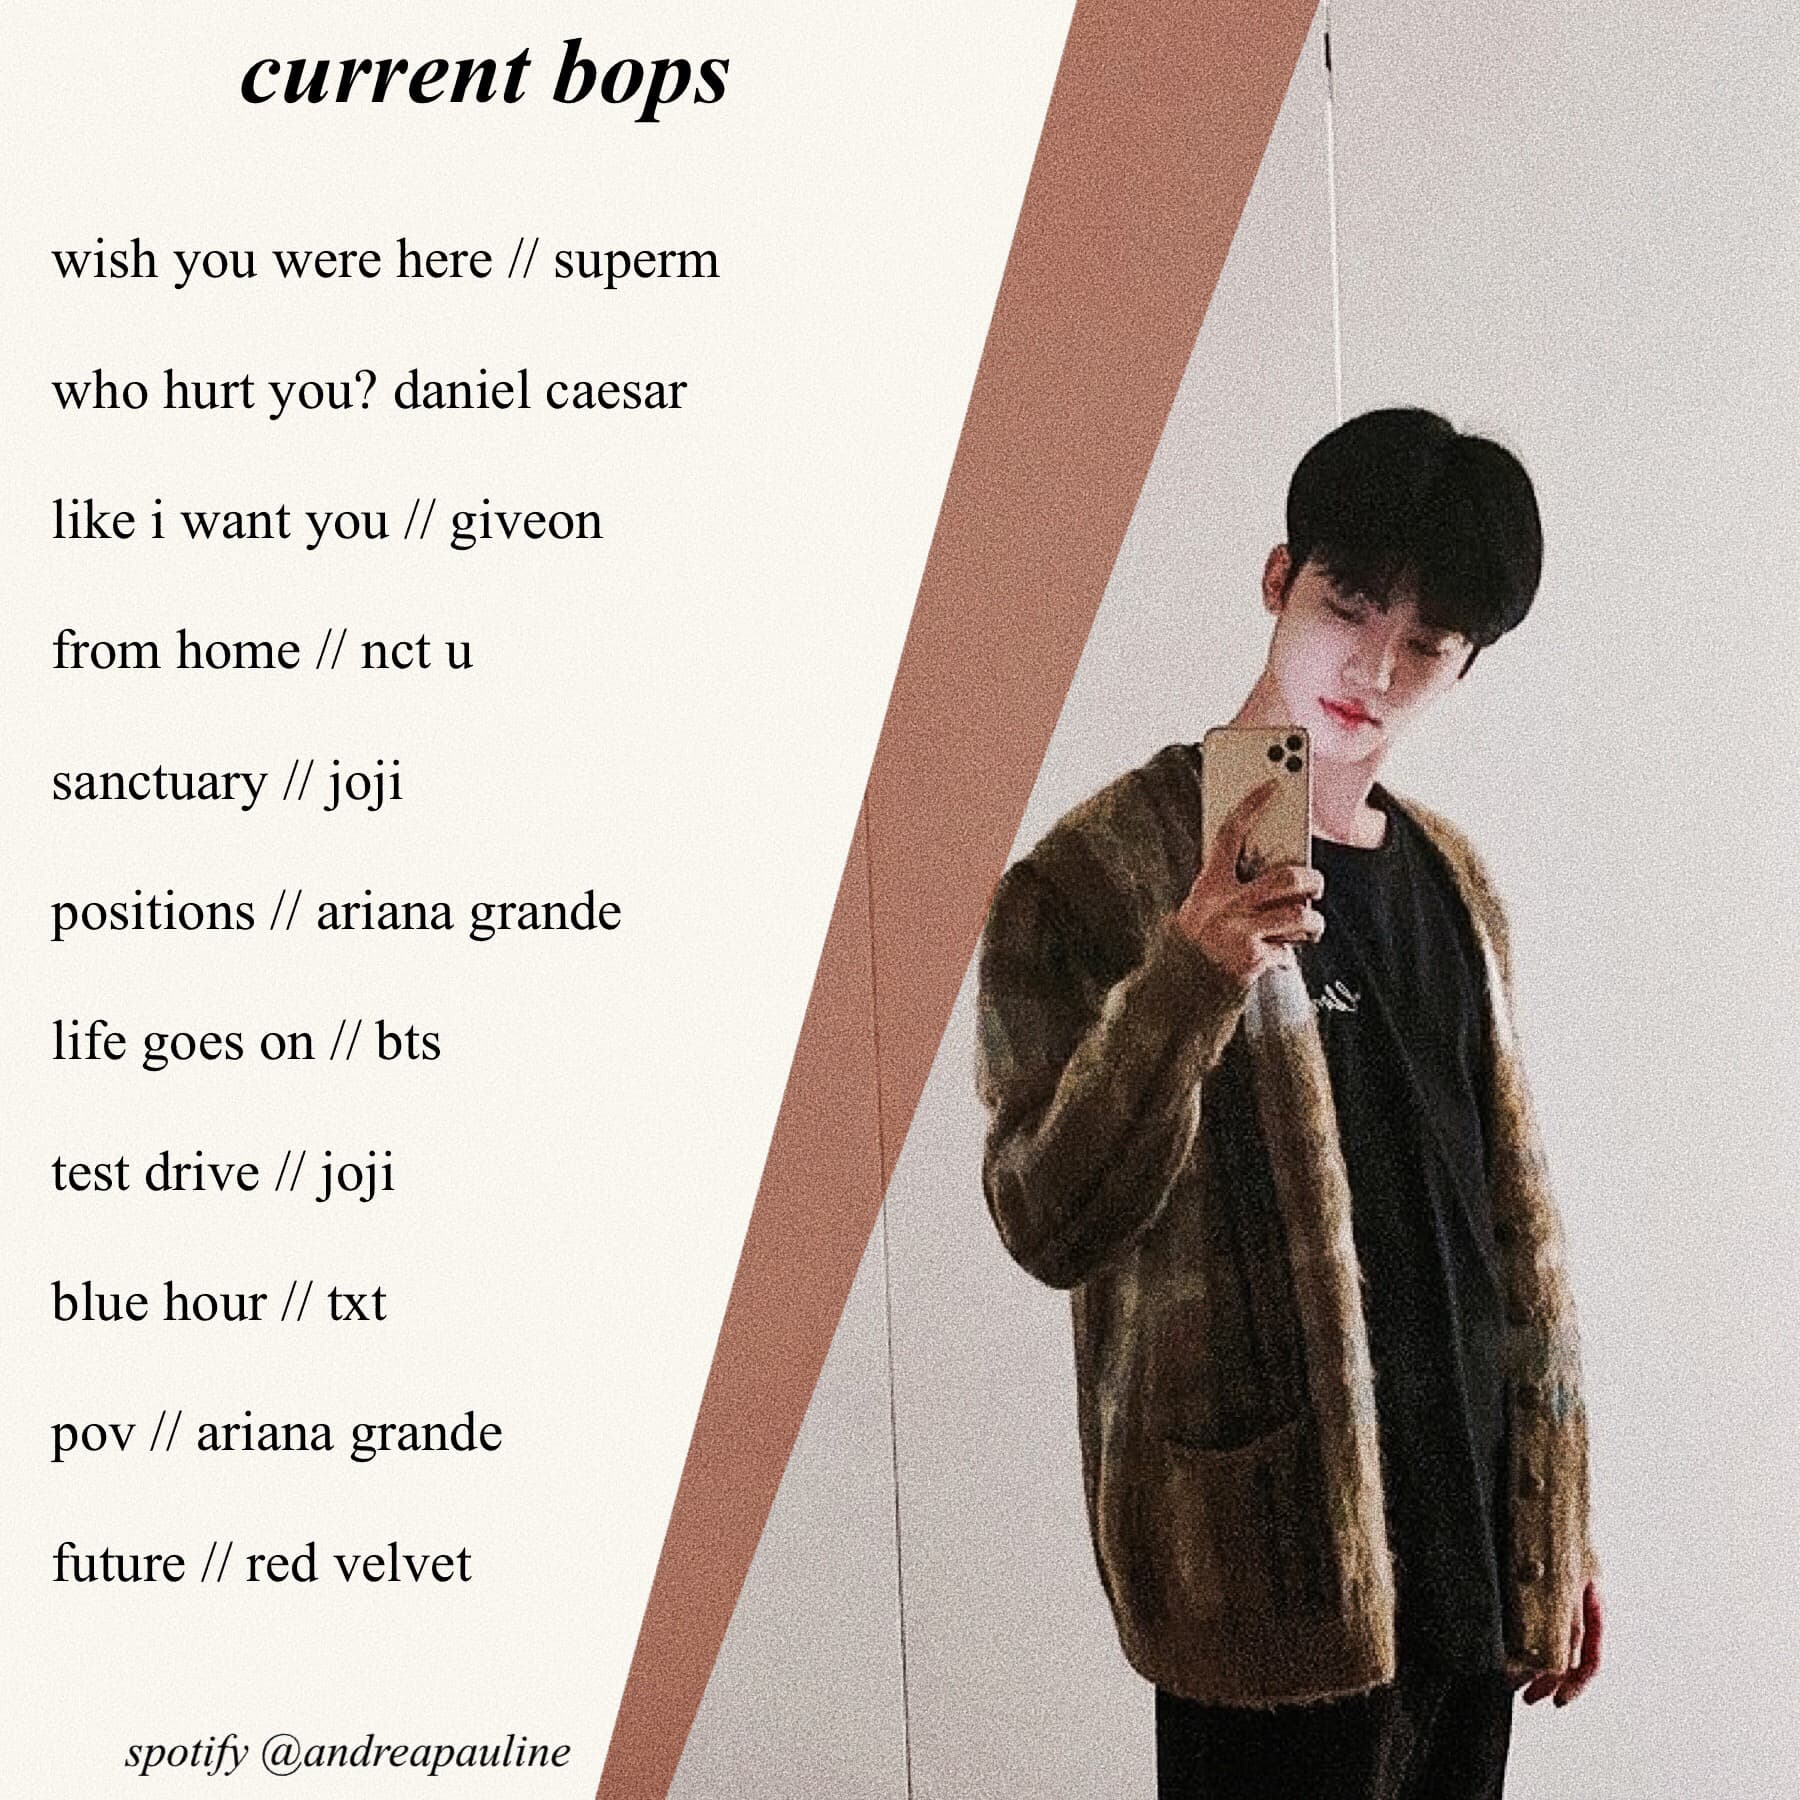 🧺 heyy >:) here's a lil playlist for my current bops :) also OMG DID YALL SEE DOYOUNG'S NEW INSTA POST, I WILL BE PASSING AWAY NOW. anyways, have a great weekend !! 😌✌🏼